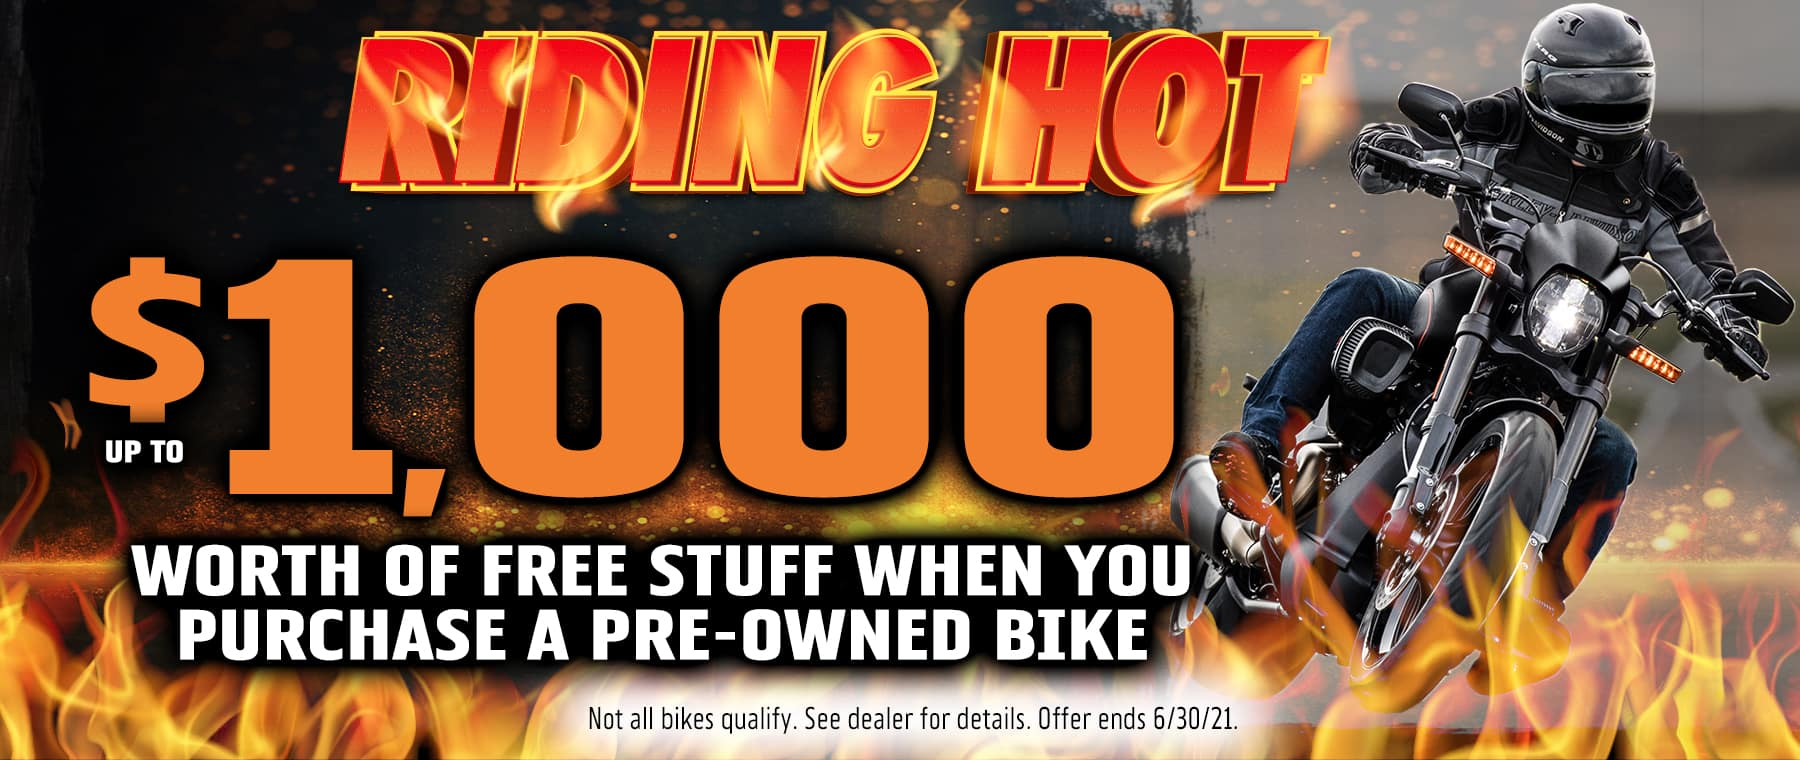 UP TO $1,000 WORTH OF FREE STUFF WITH PRE-OWNED BIKE PURCHASE